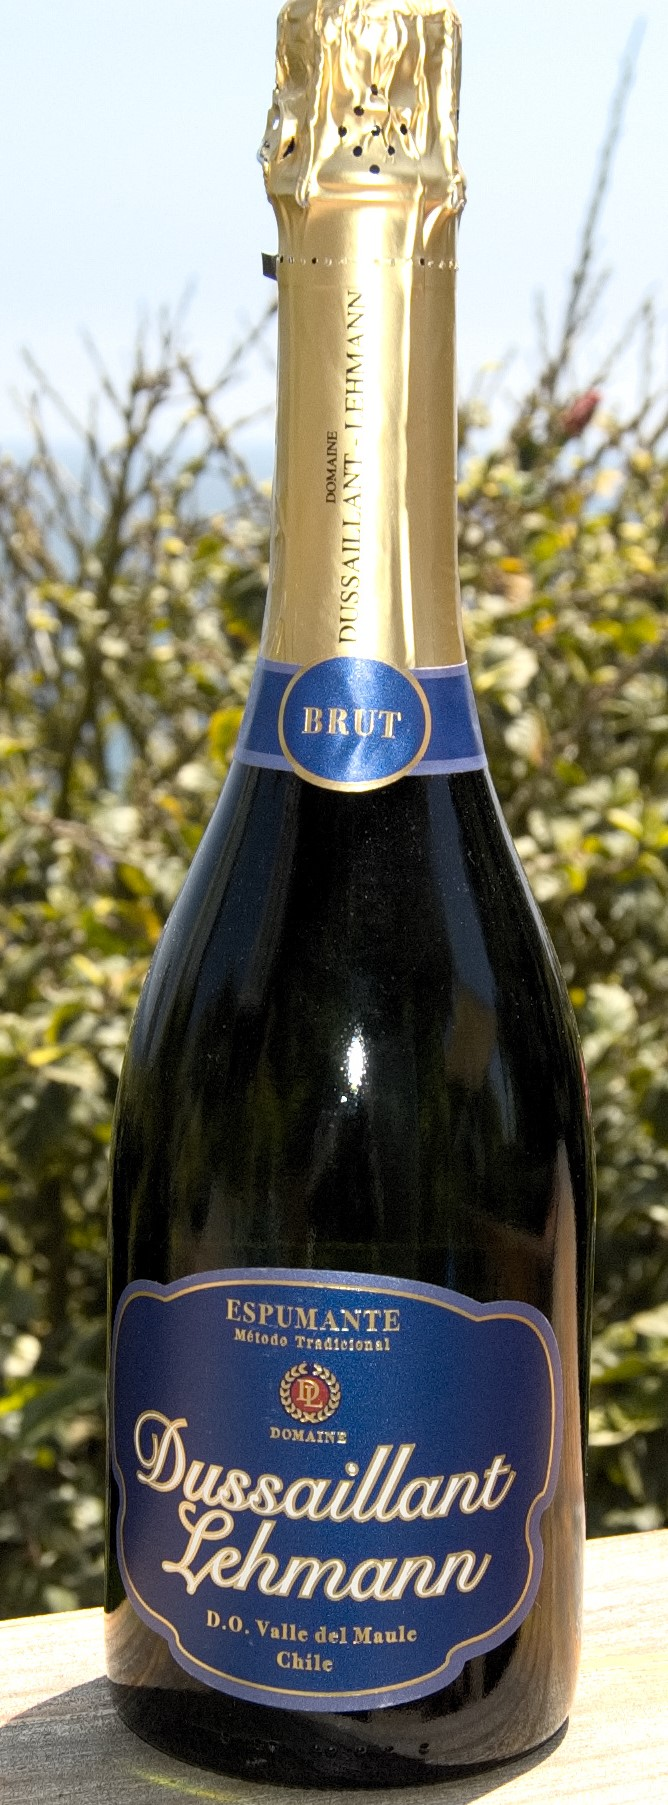 Sparkling wines for the festive season